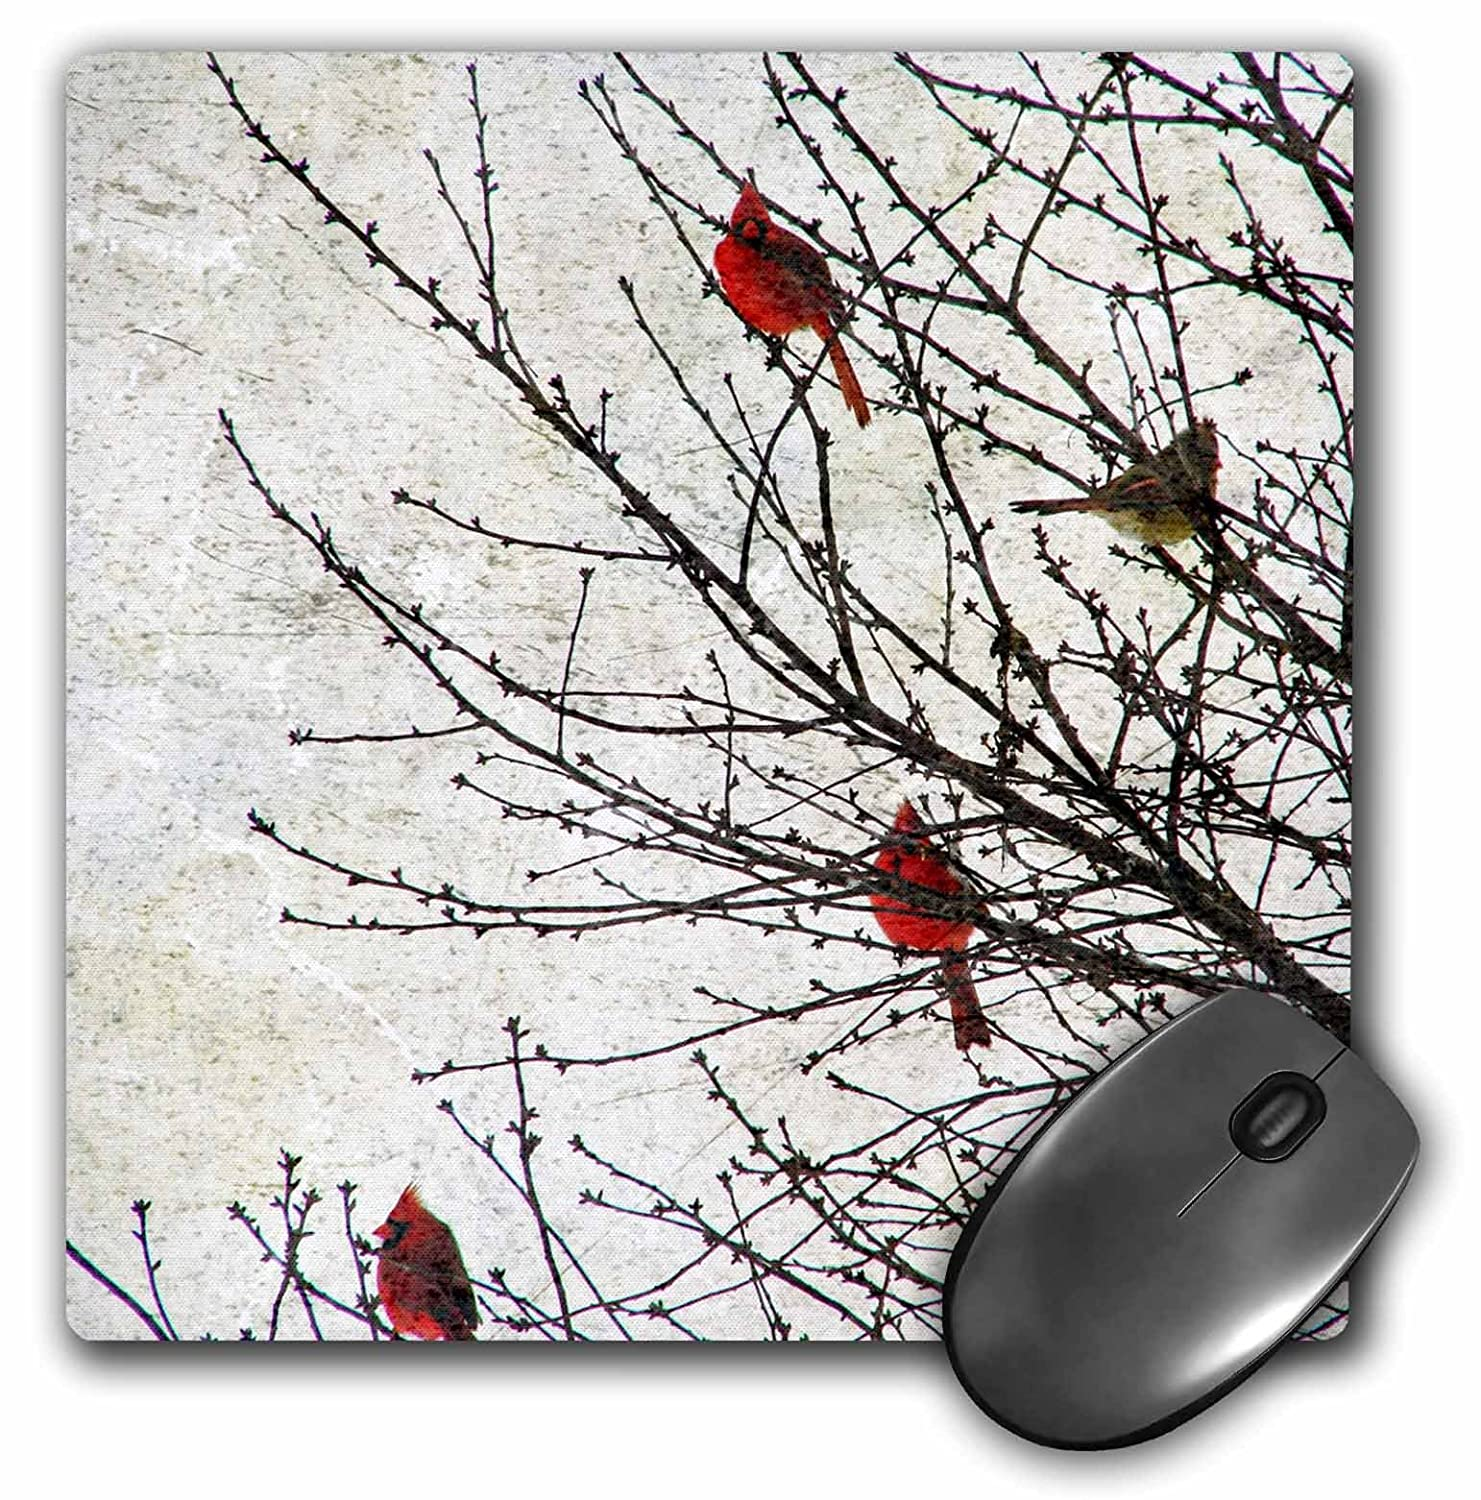 3dRose LLC 8 x 8 x 0.25 Inches Mouse Pad Cardinals Photographed by Angel and Spot mp 12387 1